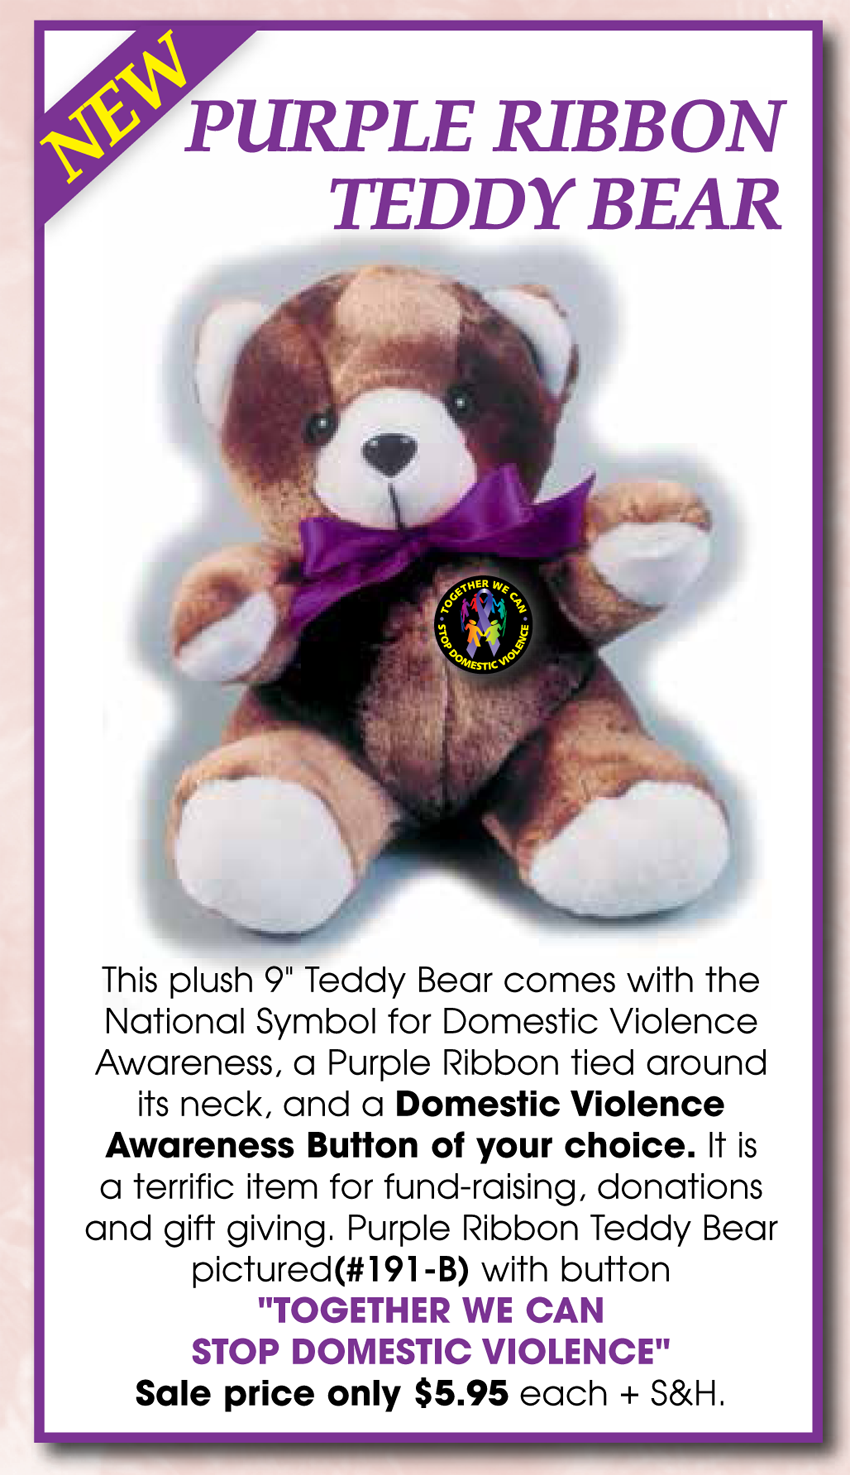 TOGETHER WE CAN STOP DV - Teddy Bear